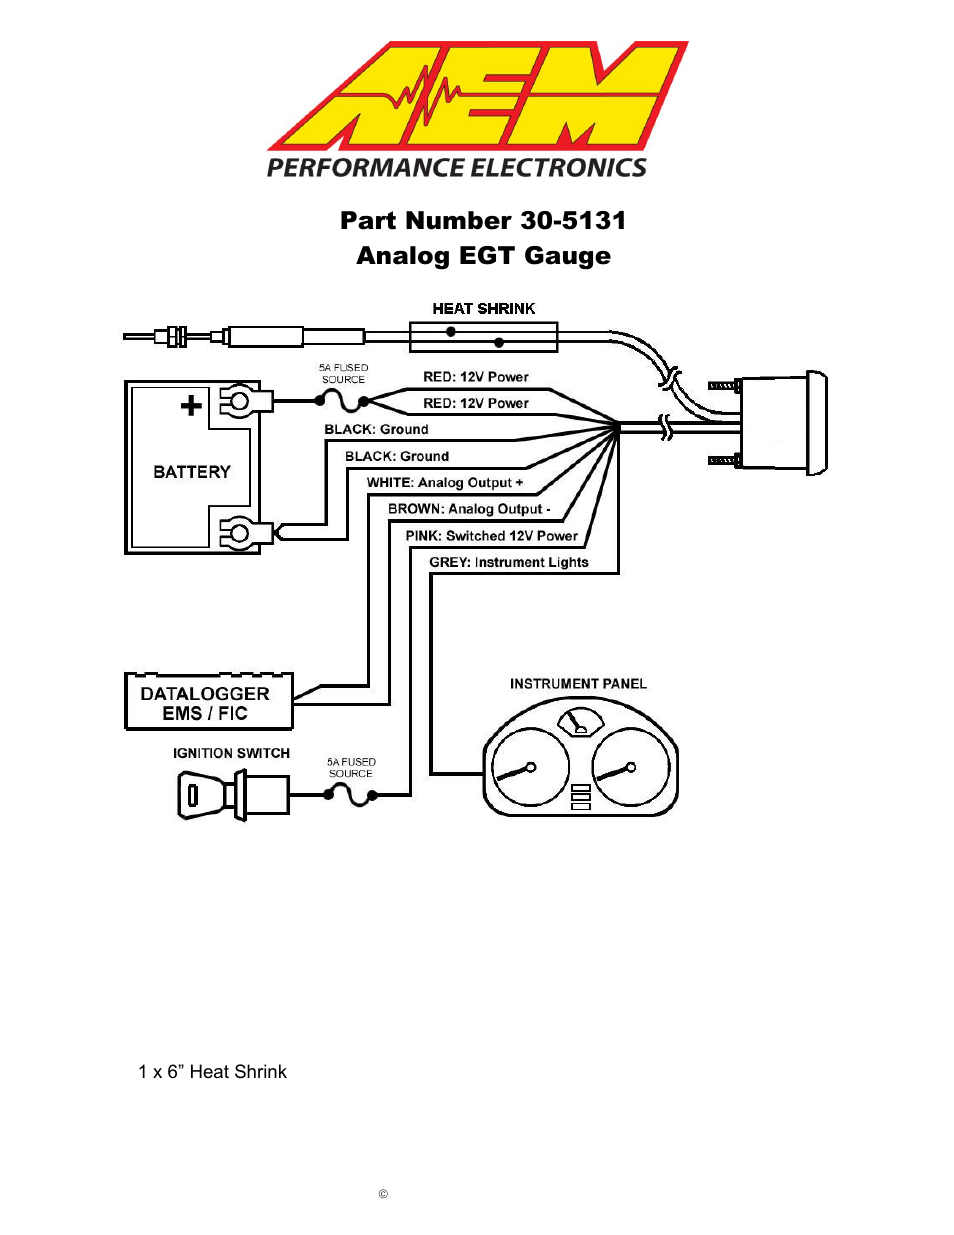 aem 30 5131m analog egt metric gauge page1 aem 30 5131m analog egt metric gauge user manual 7 pages also